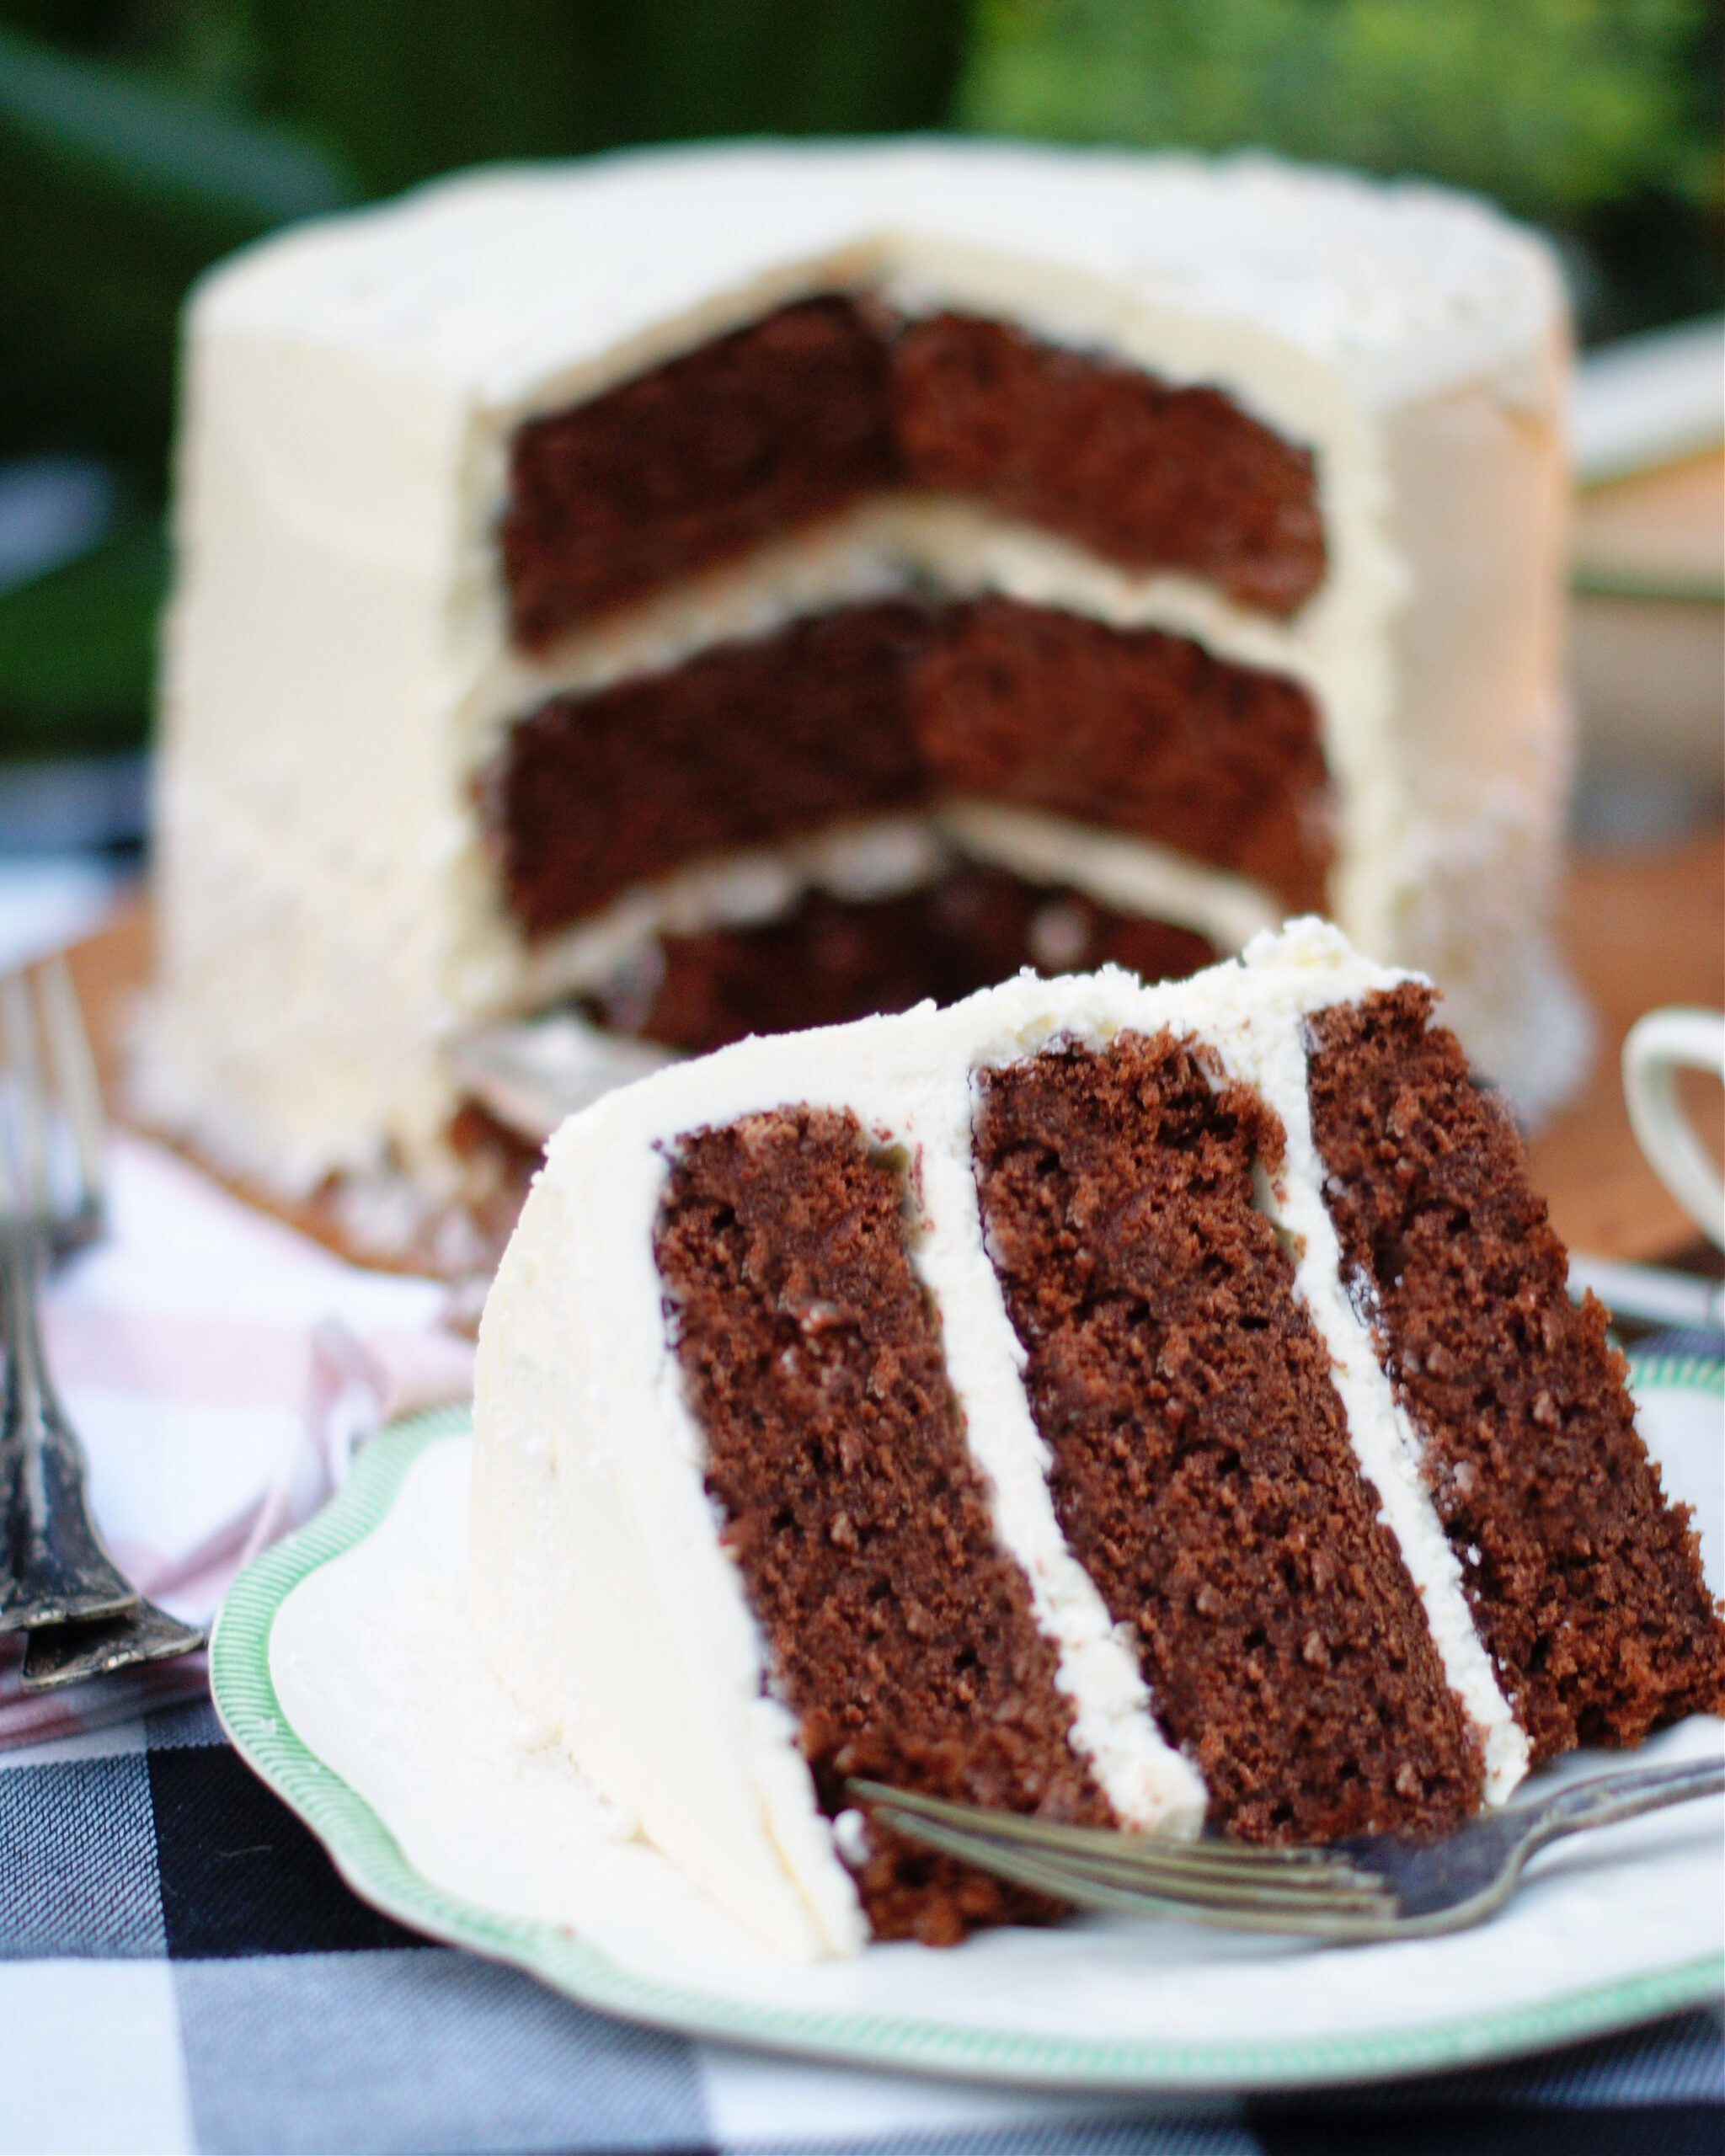 A large slice of dark chocolate layer cake with white chocolate buttercream with the cake in the background.